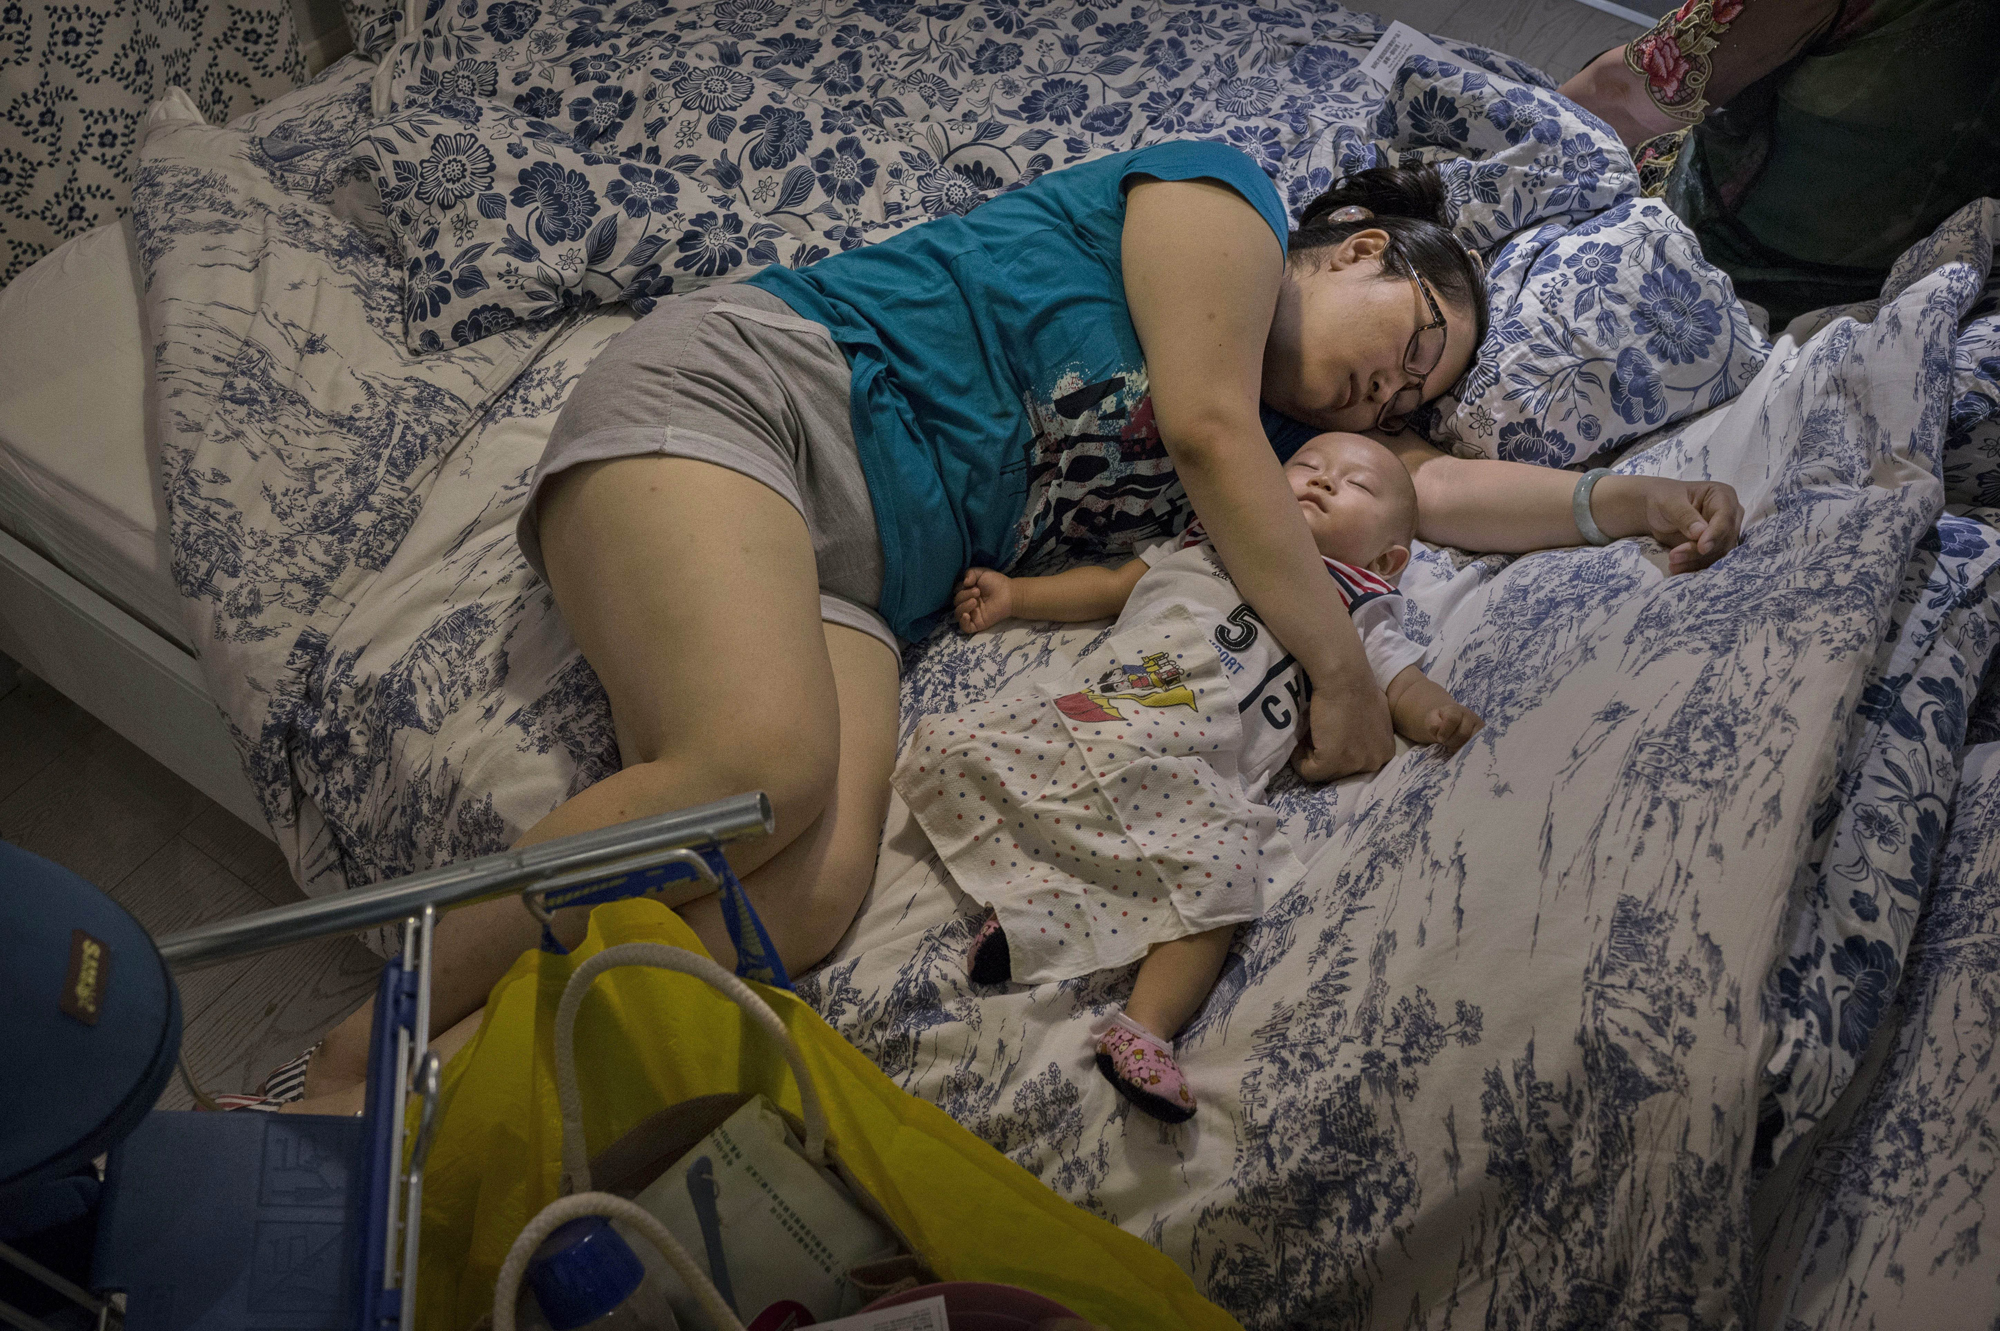 A shopper sleeps with her child on a bed in the showroom of the IKEA store on July 6, 2014 in Beijing.